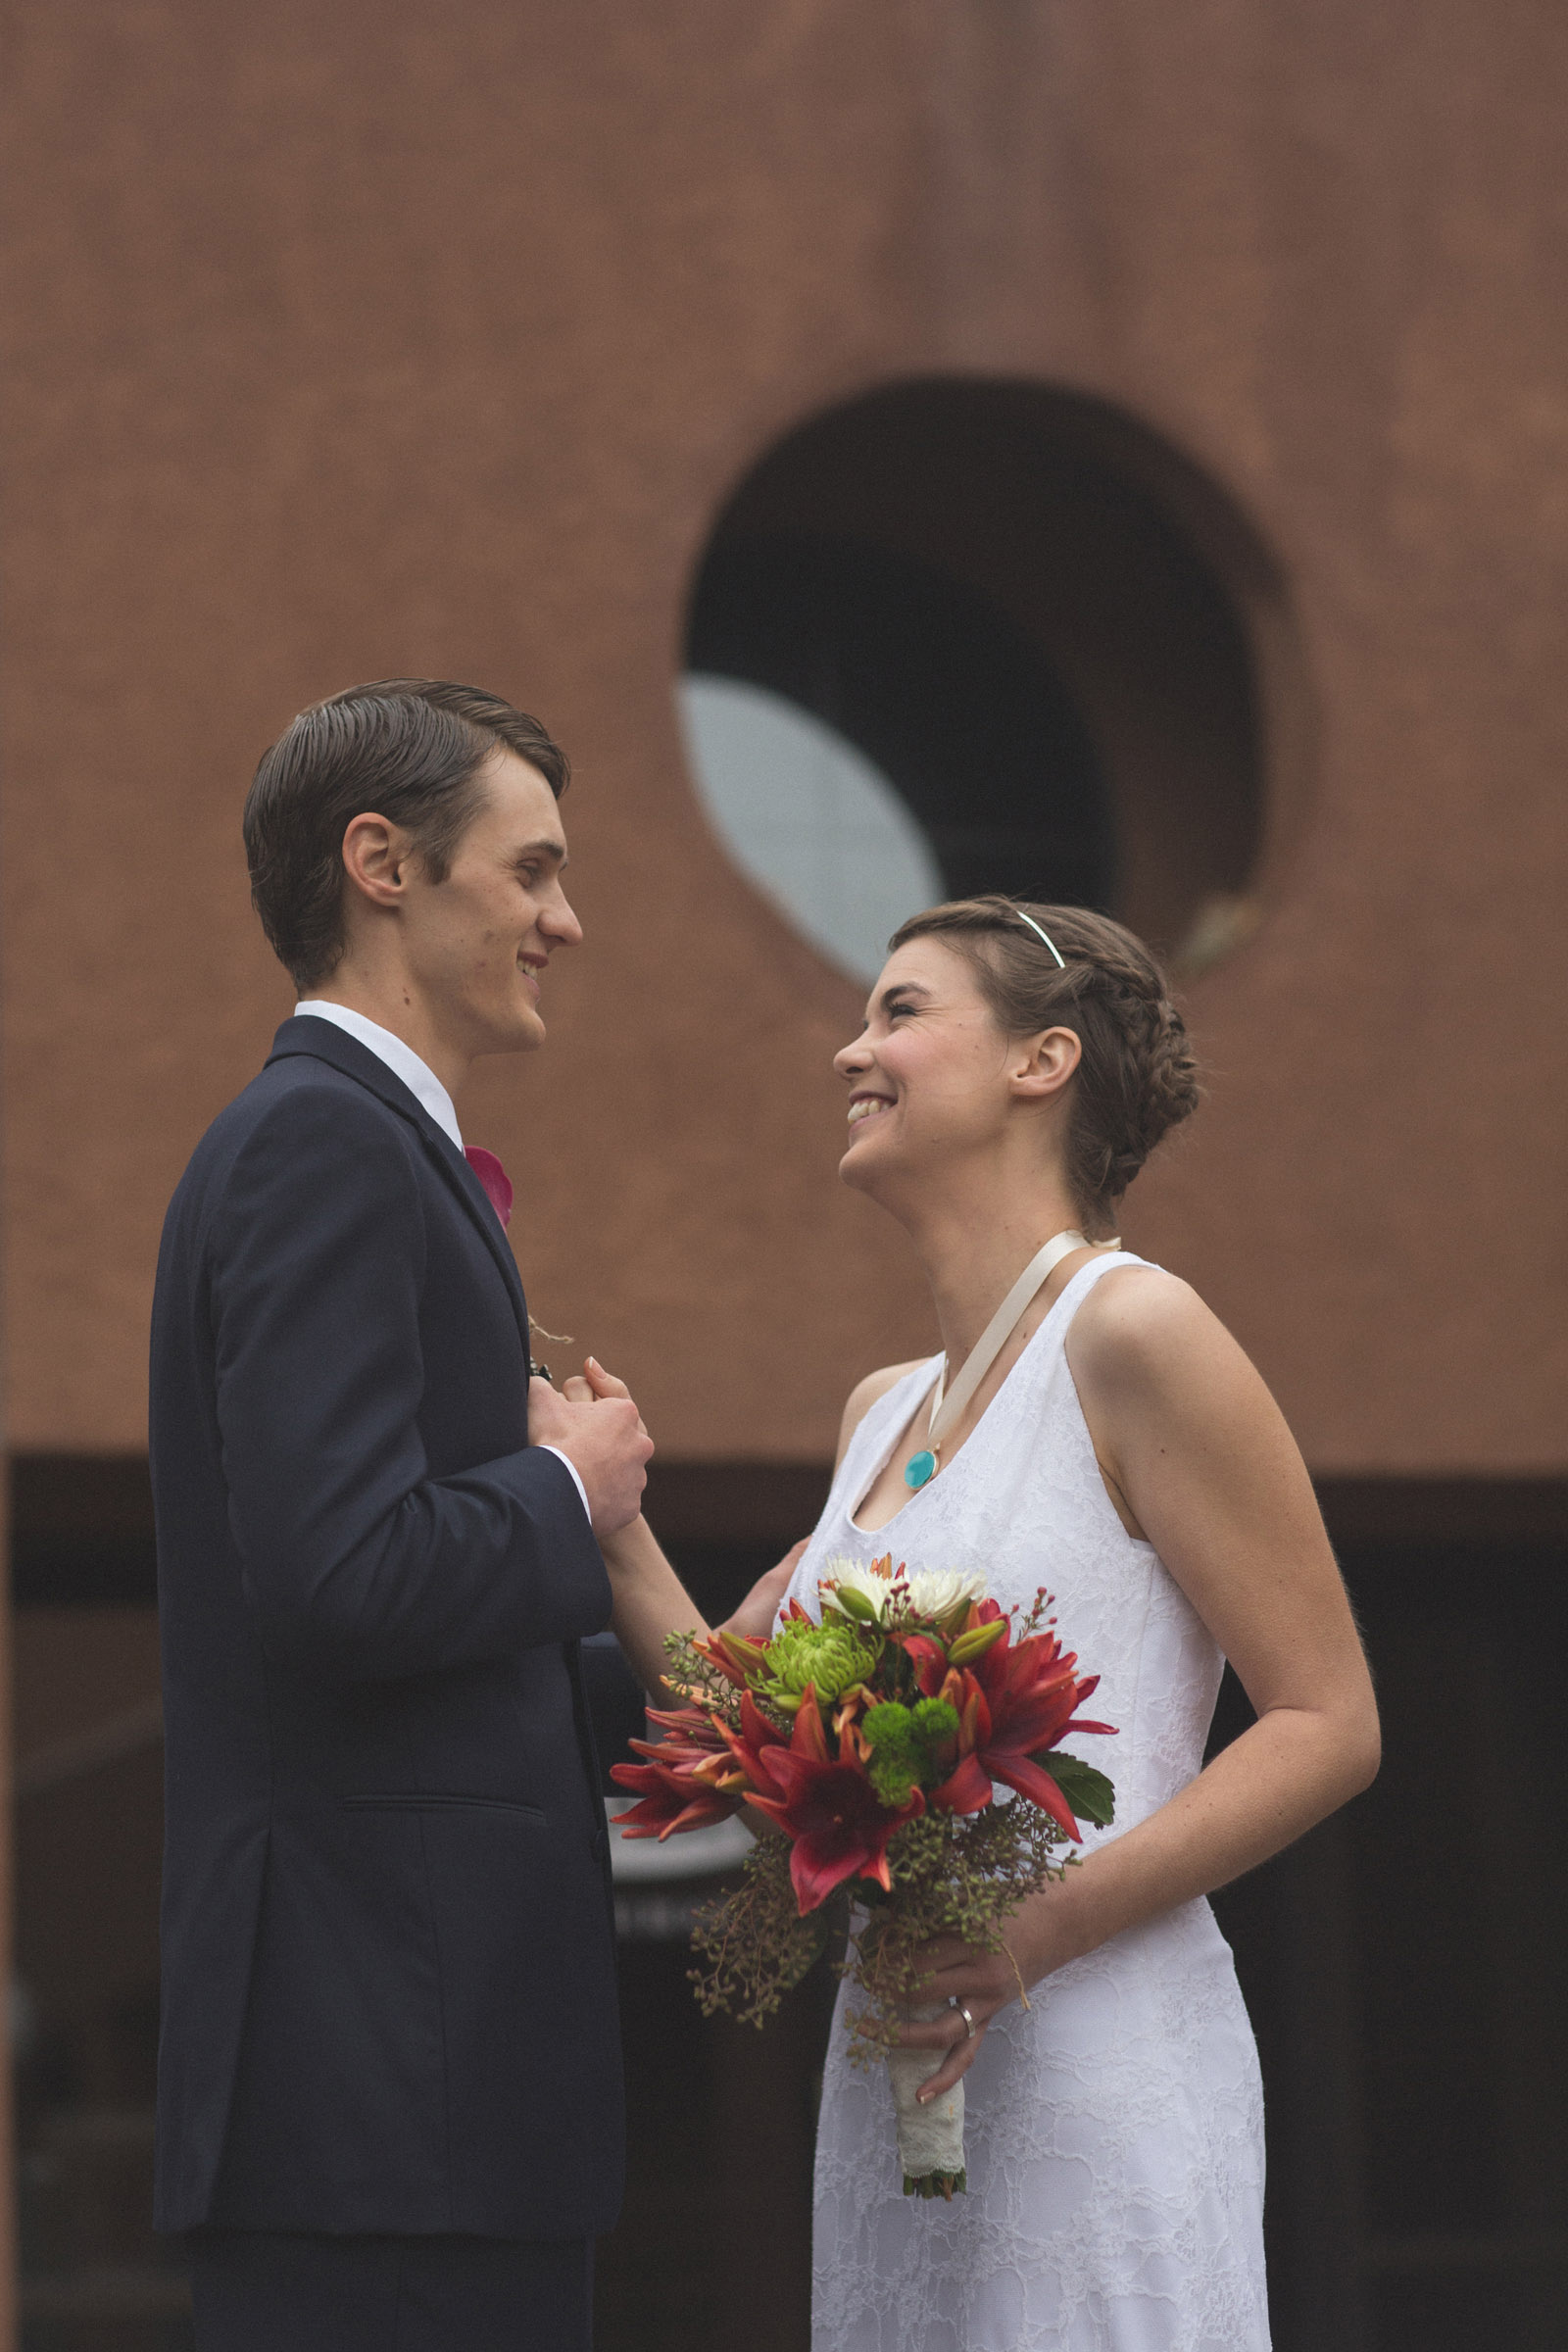 069-bride-and-groom-see-eachother-in-first-look-in-courtyard-before-the-ceremony-in-albuquerque-nm